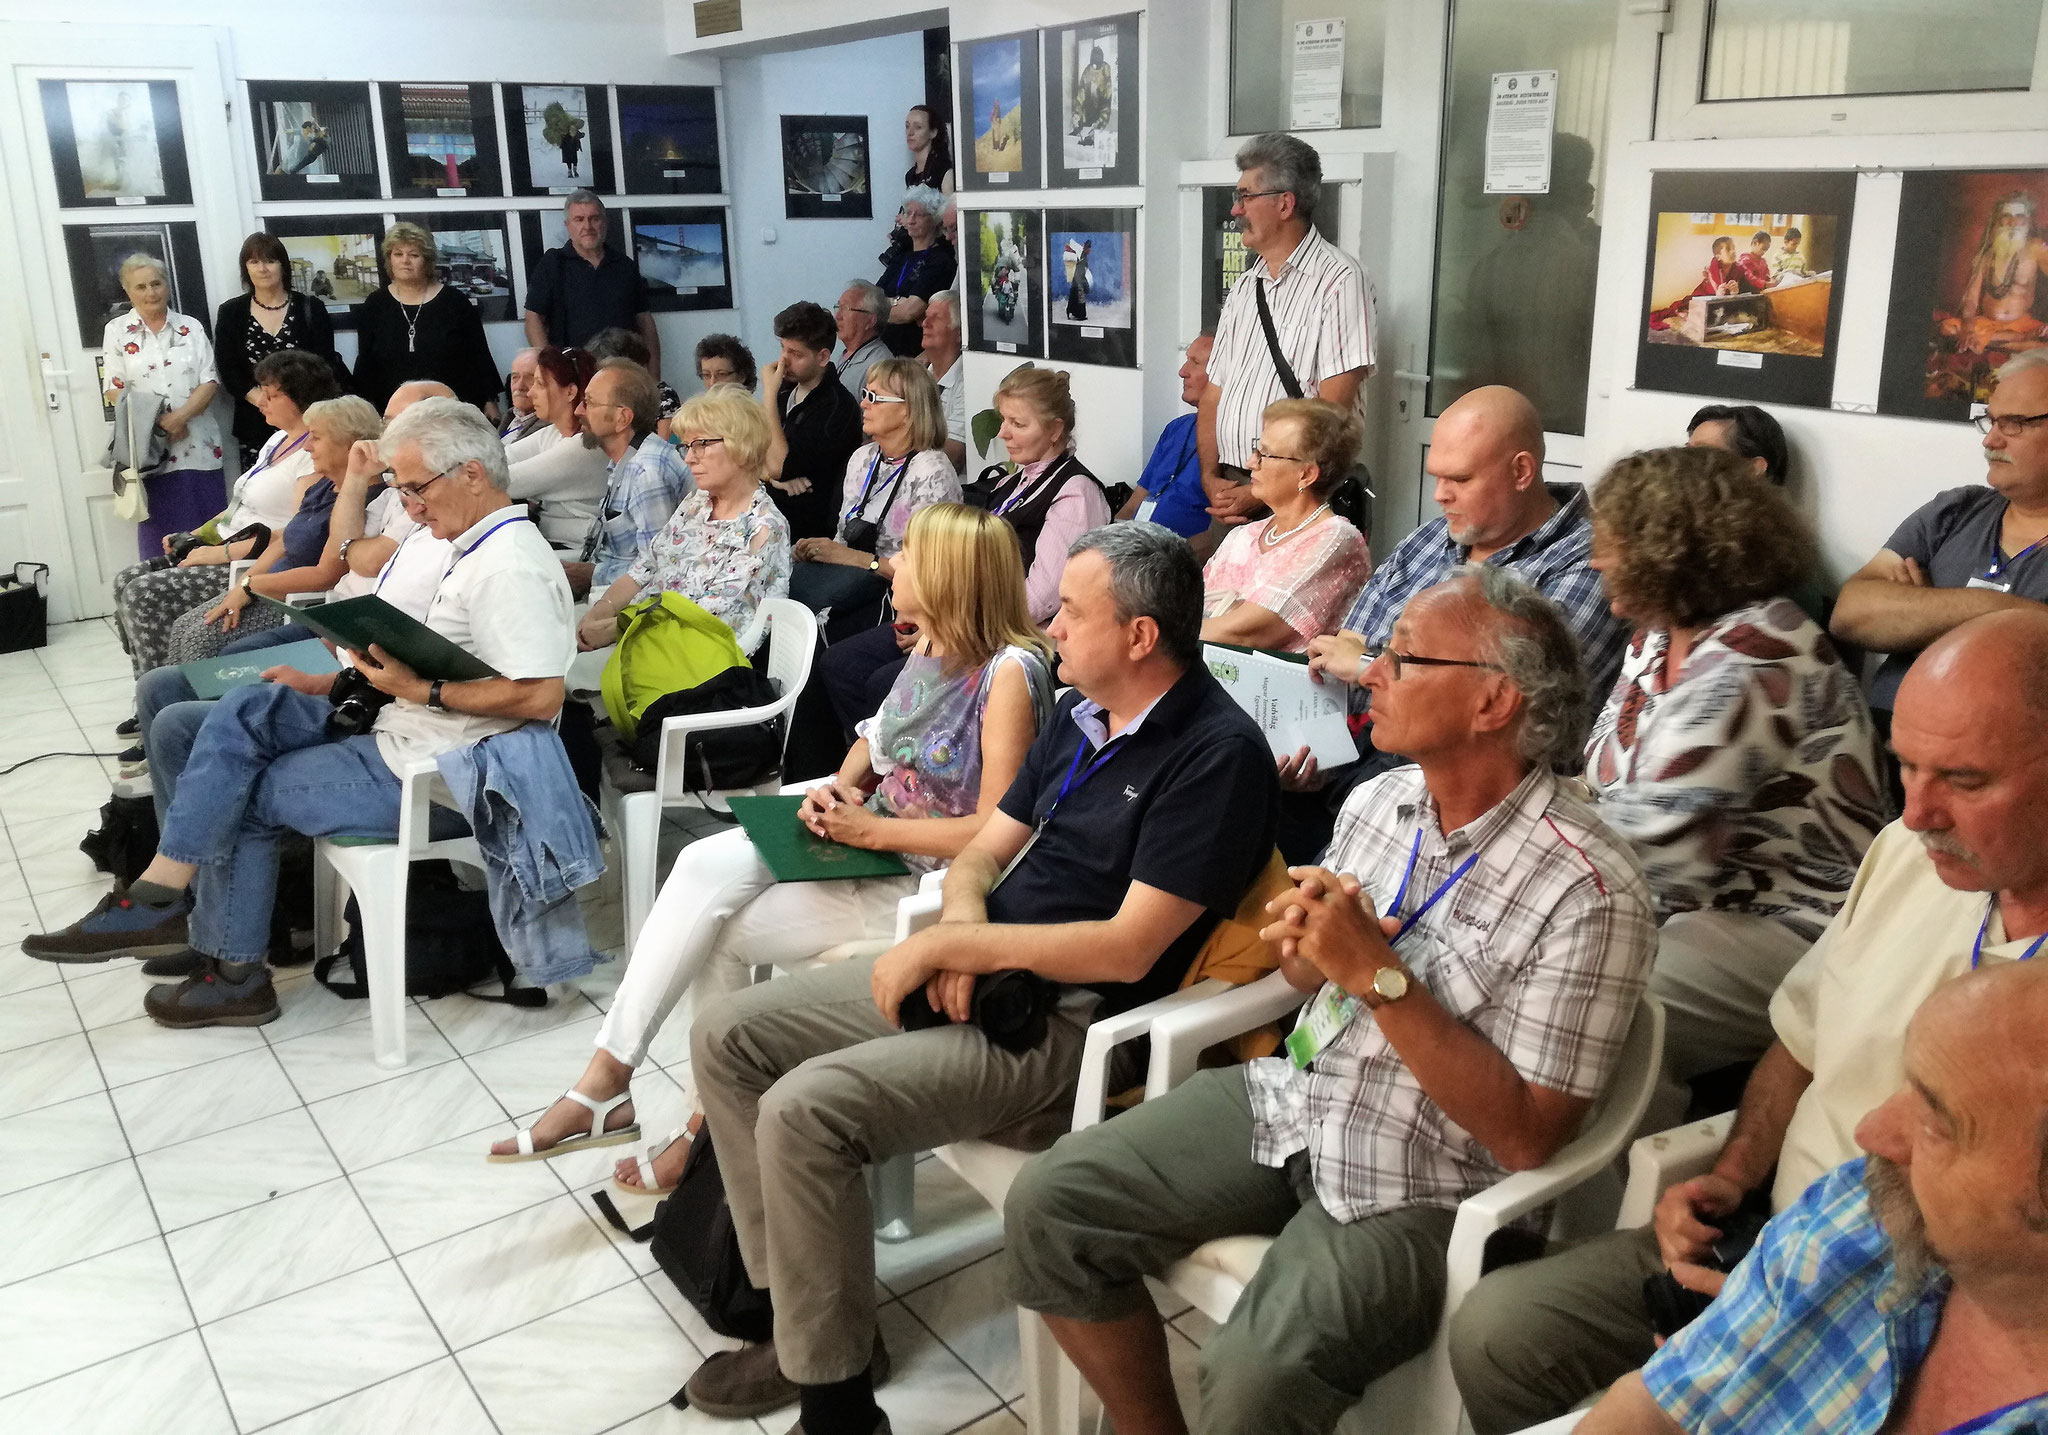 Exhibition of participants in Euro Photo Art Gallery